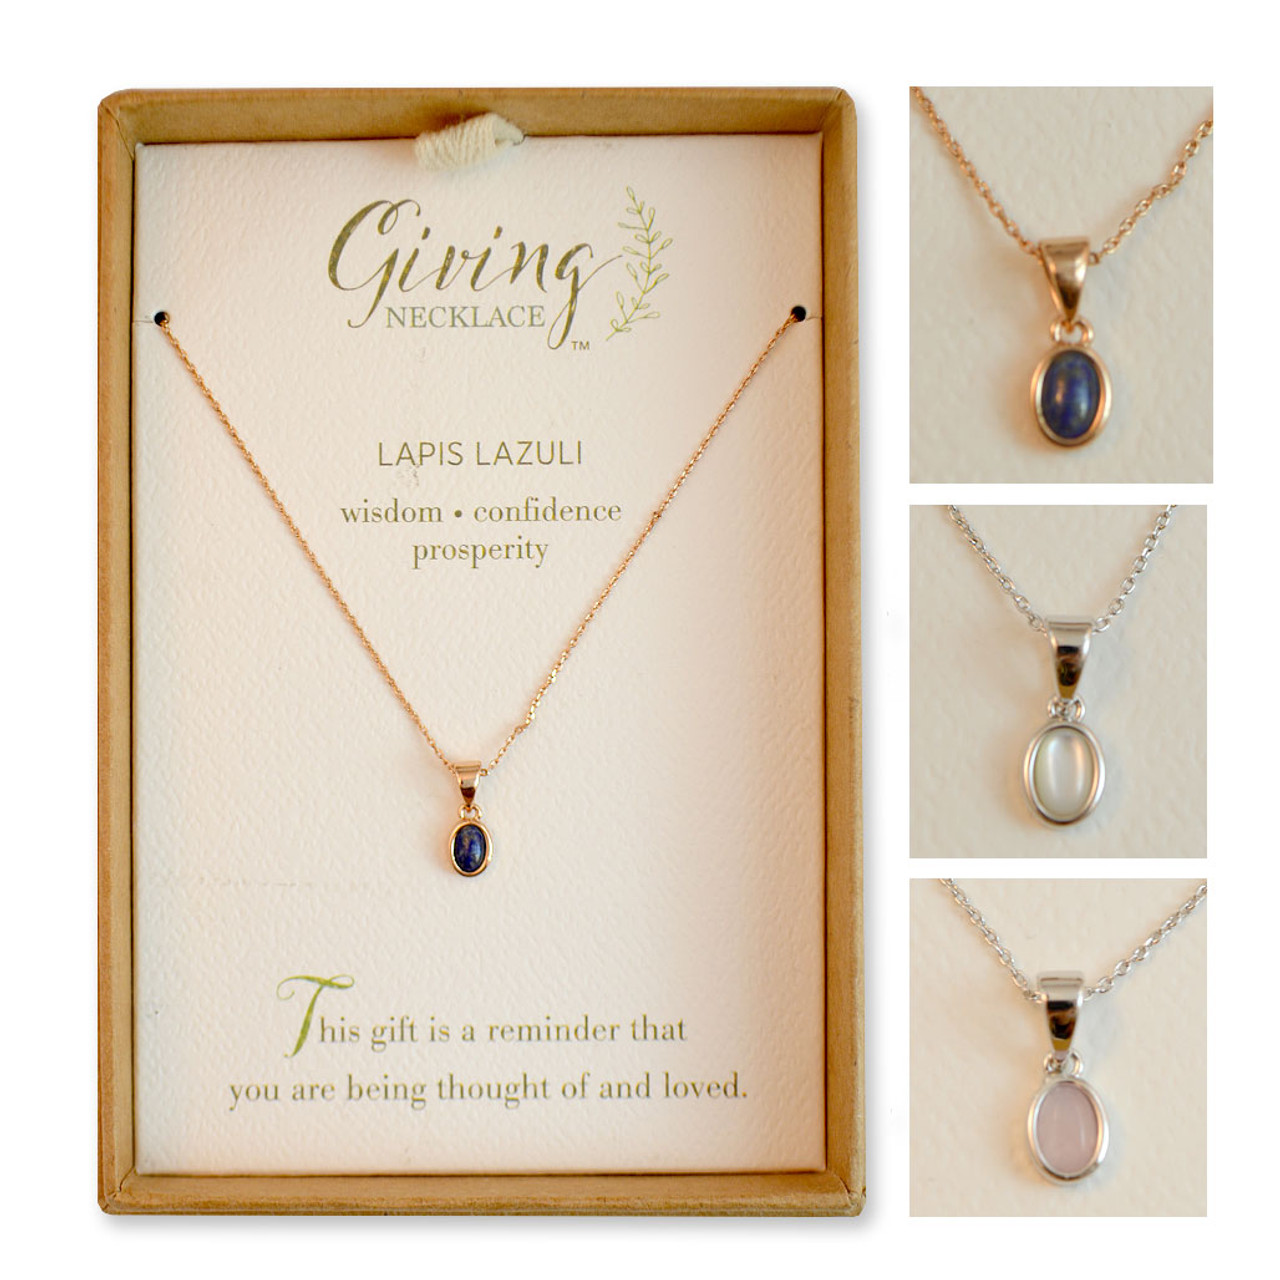 Giving Necklaces - Sold Separately